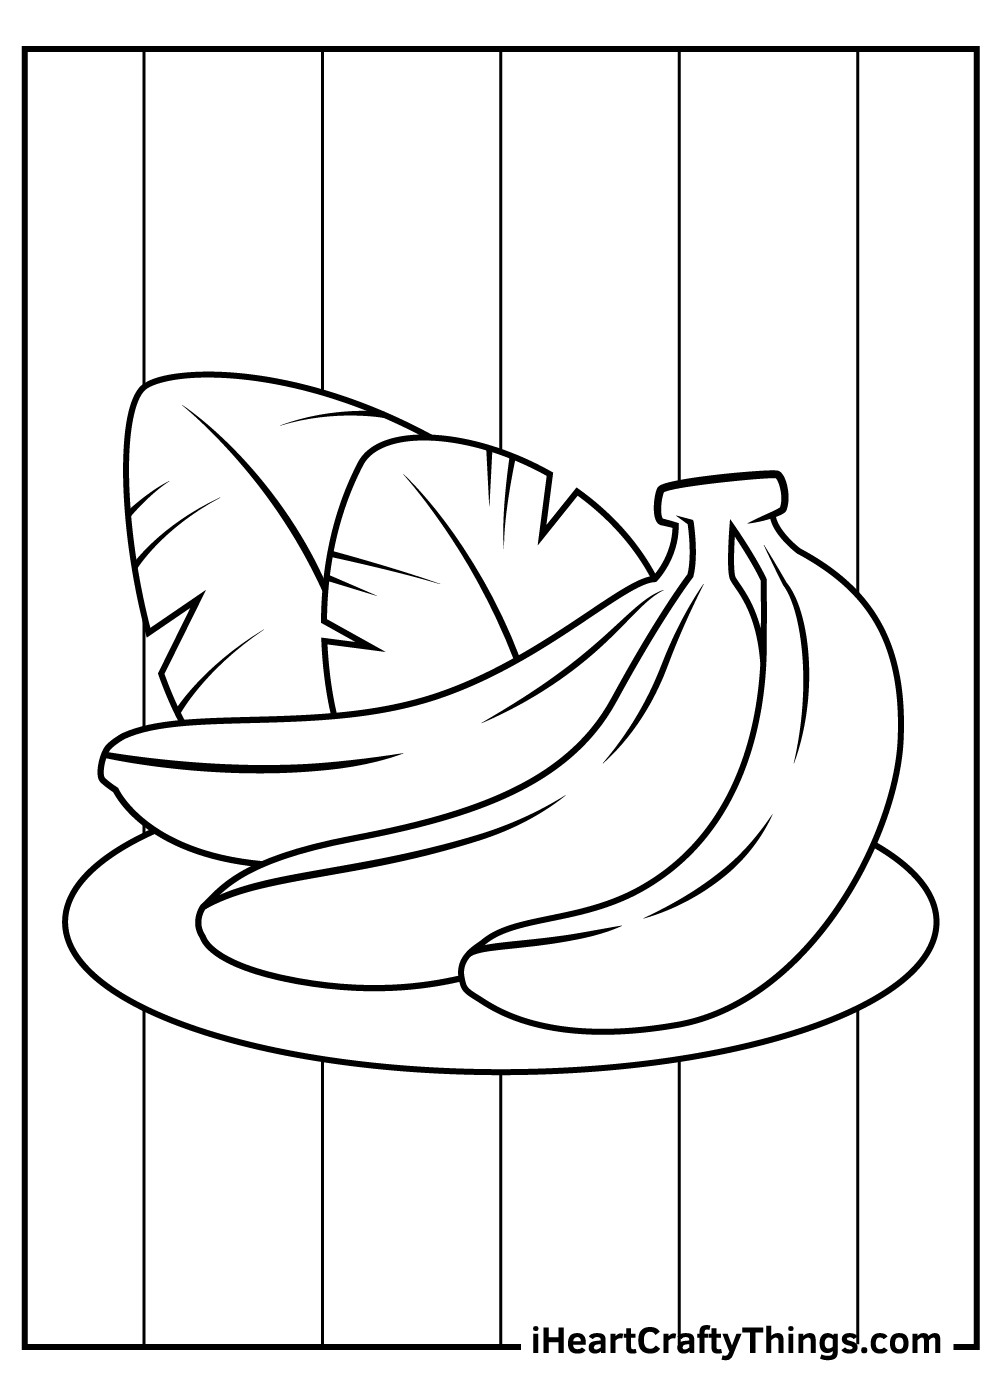 apples and bananas coloring pages free download